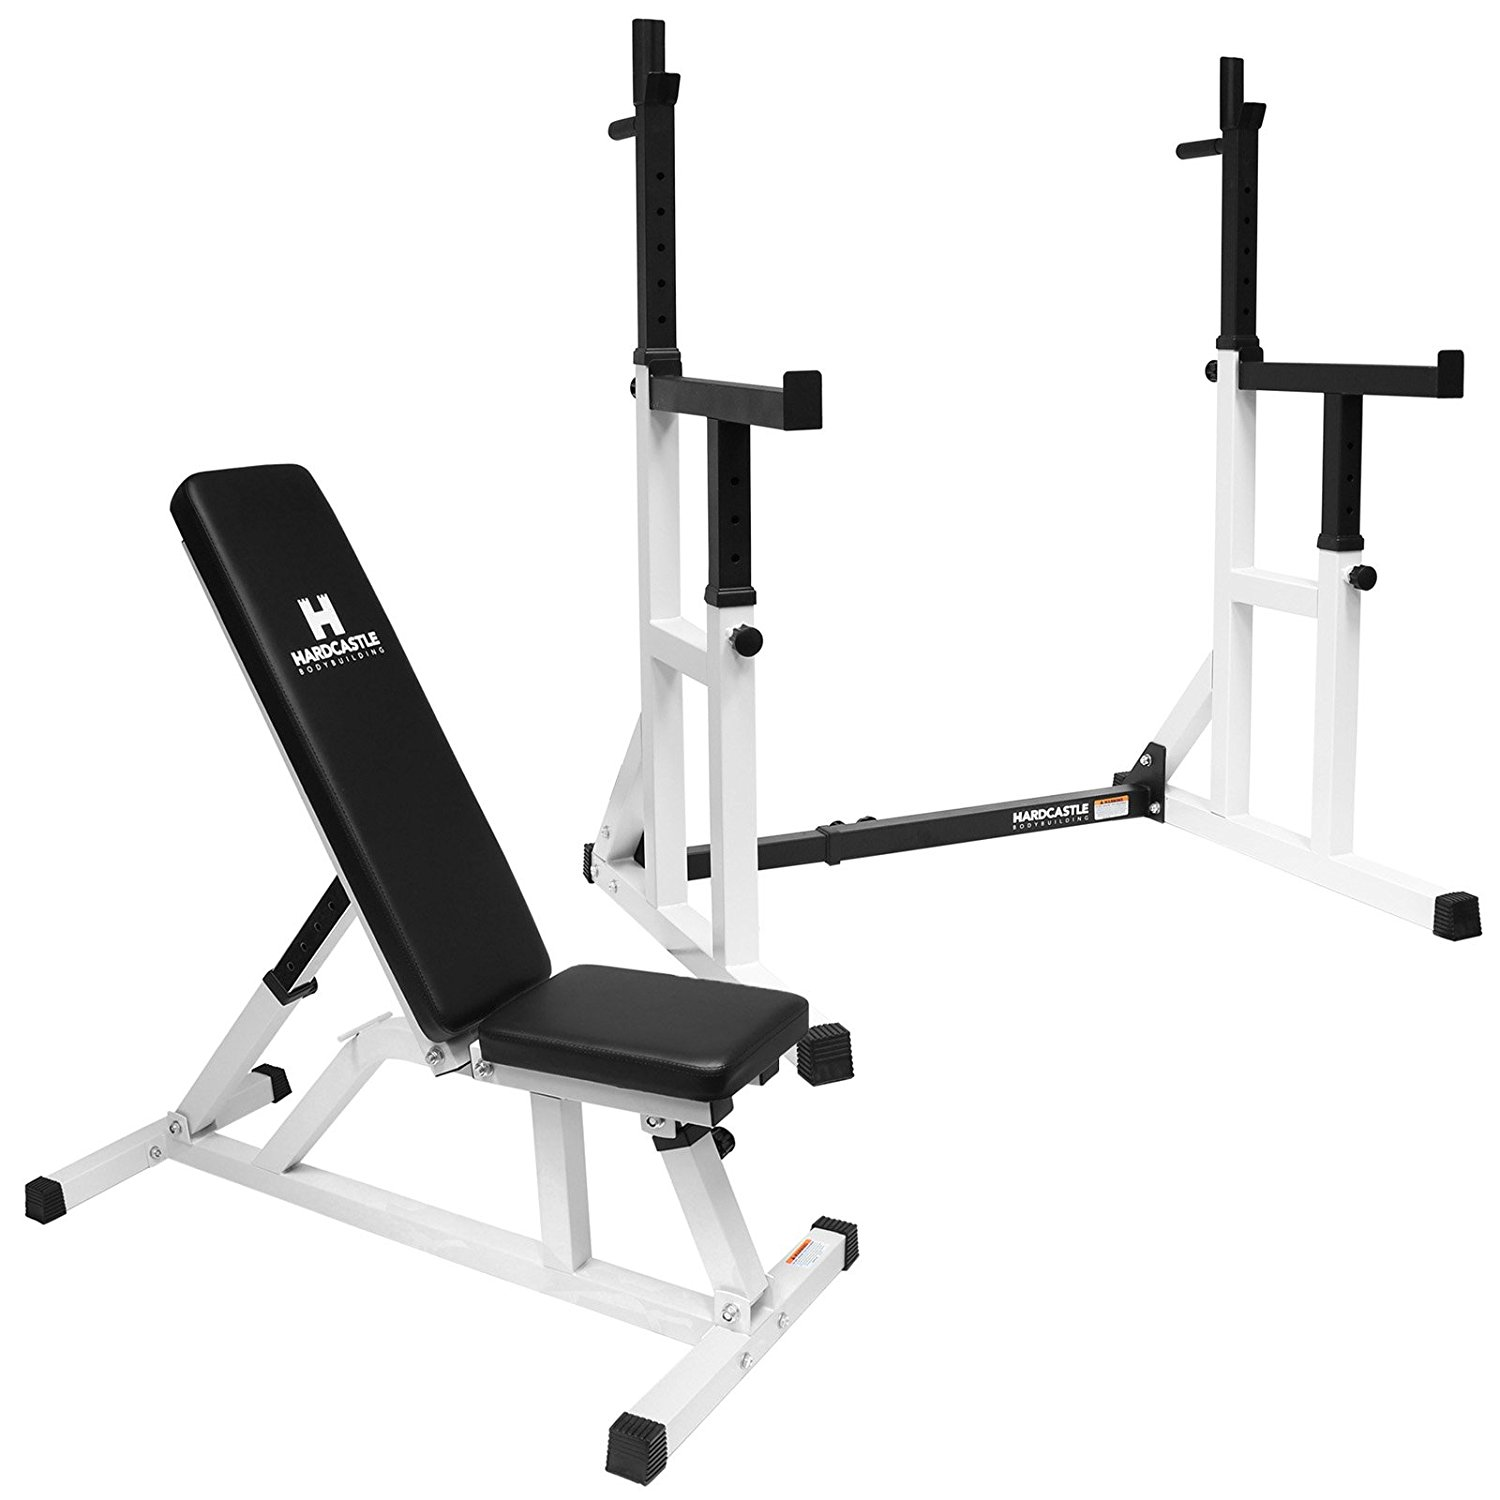 Workout Bench Set | Incline Decline Weight Bench | Powerhouse Weight Bench